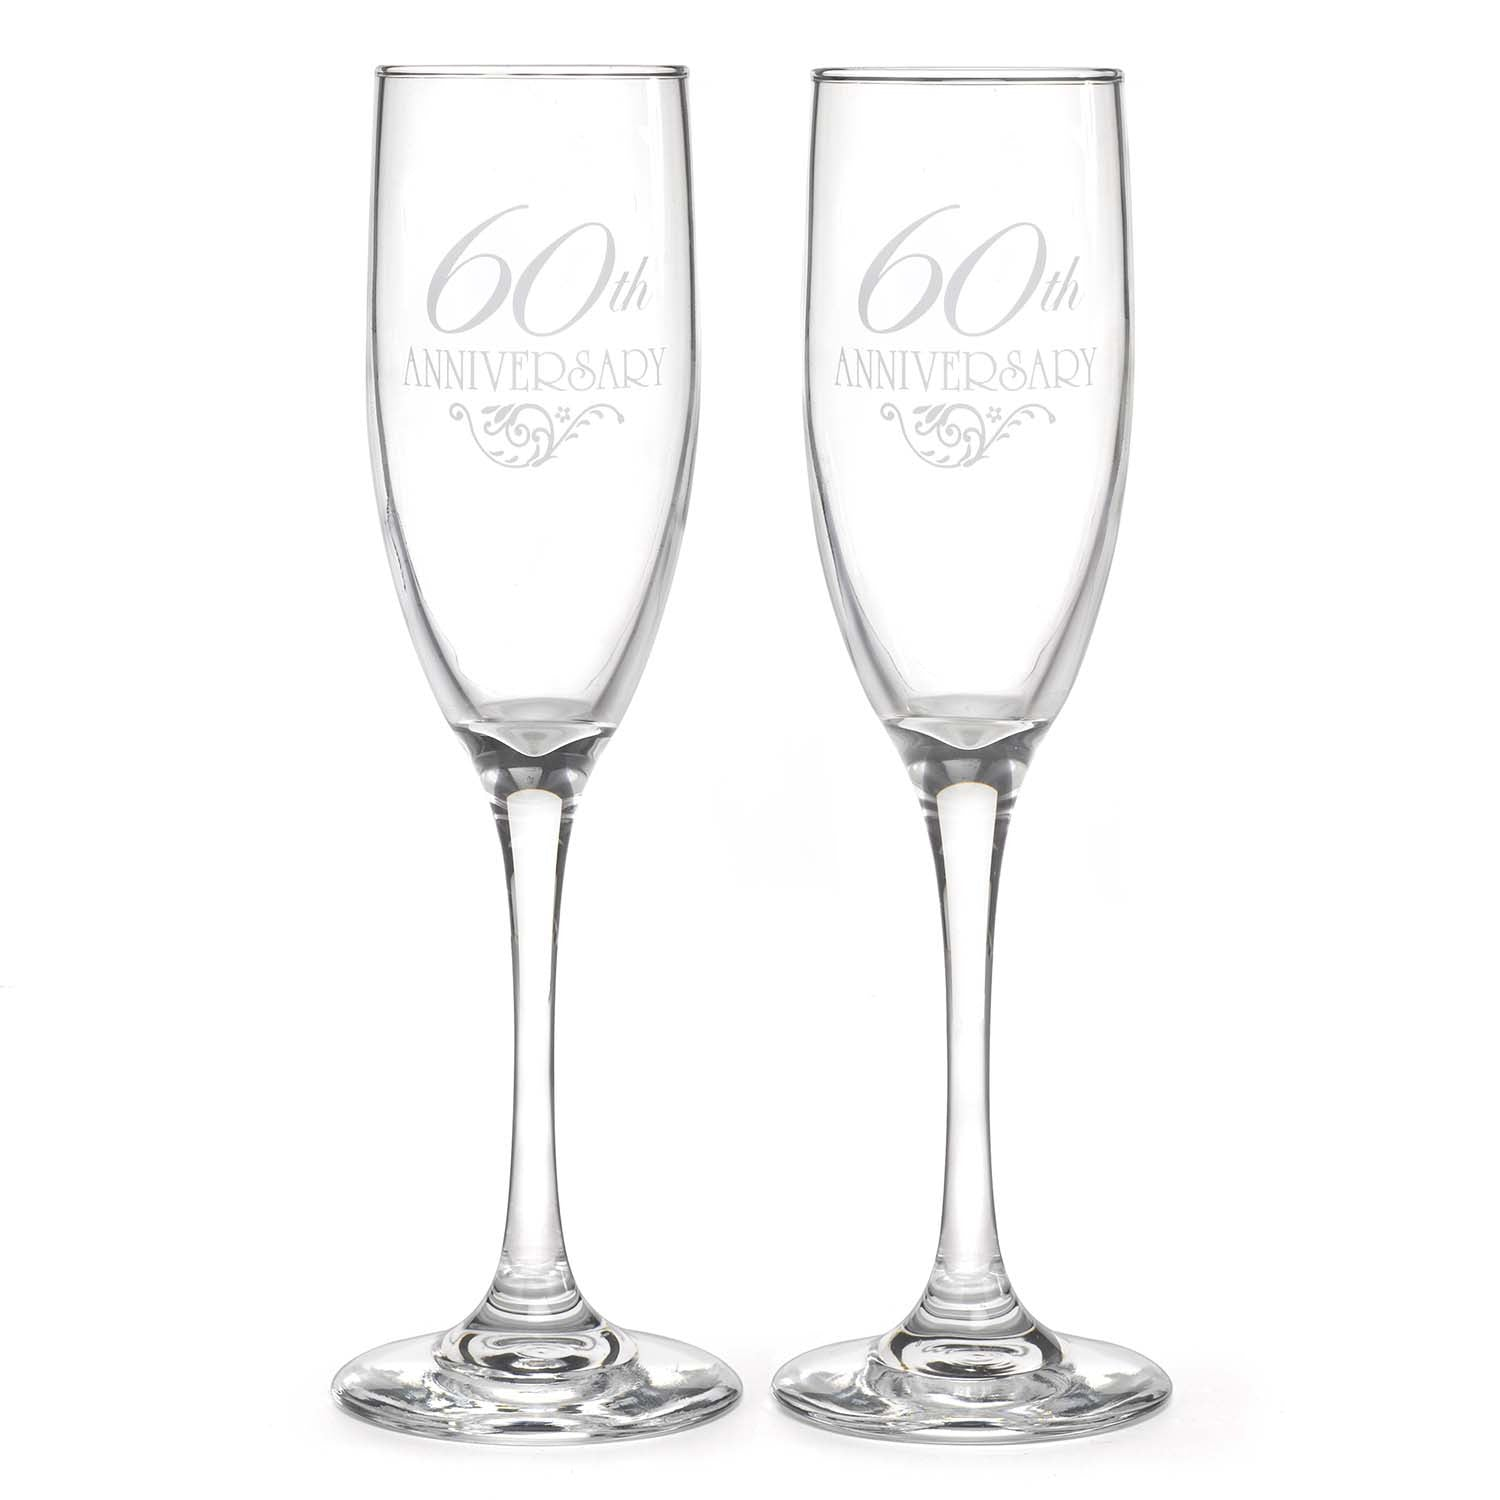 60th Wedding Anniversary Champagne Flutes